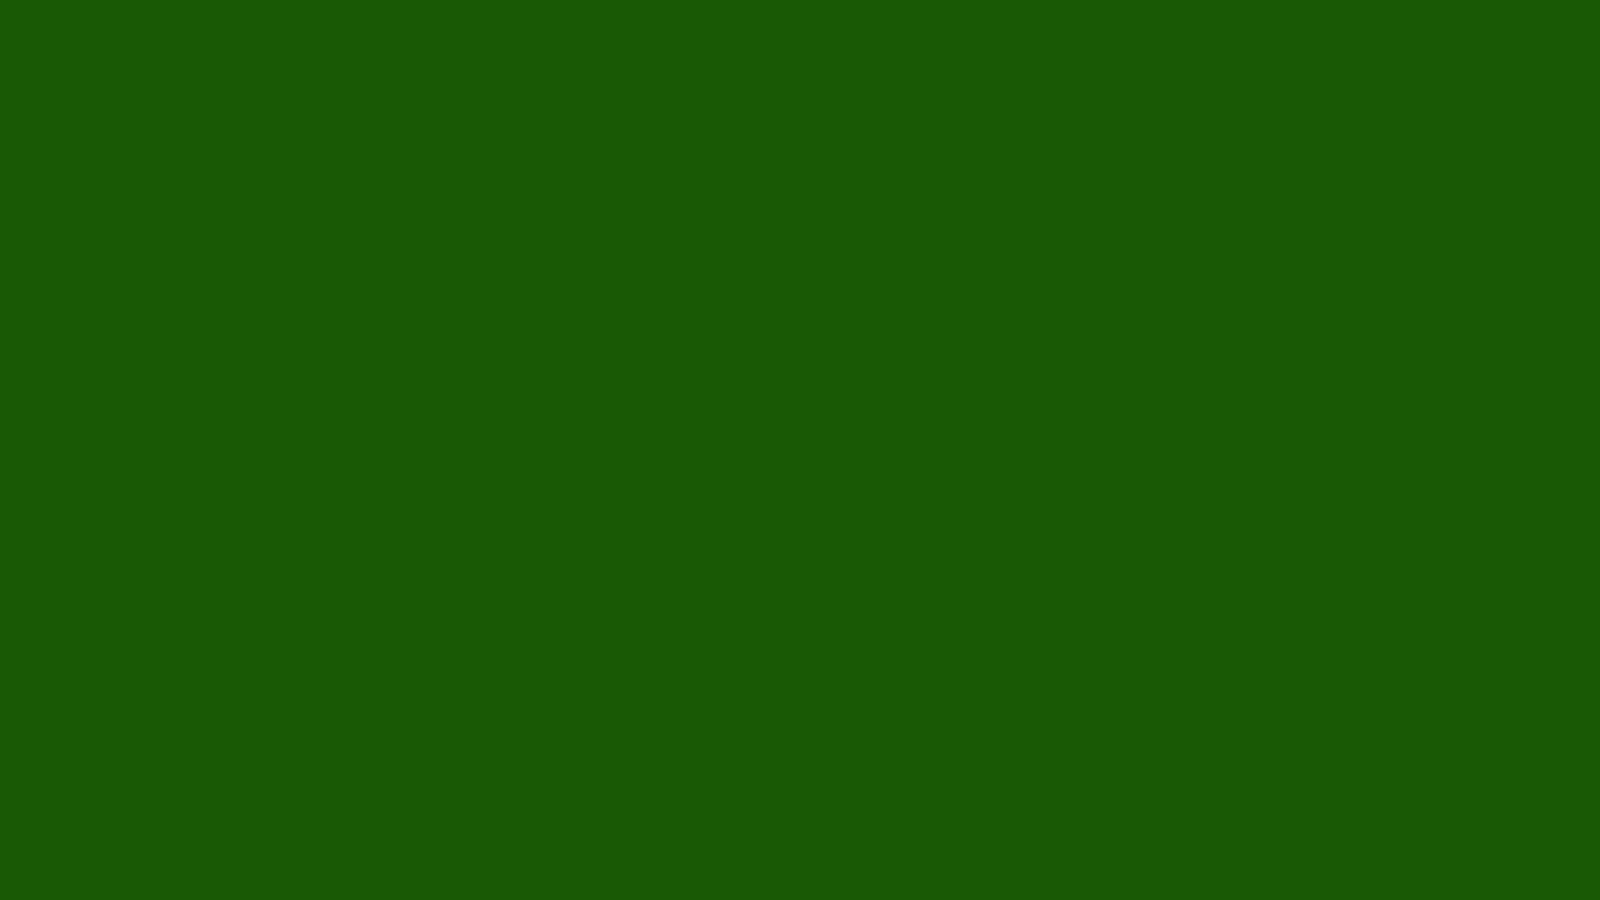 1600x900 Lincoln Green Solid Color Background